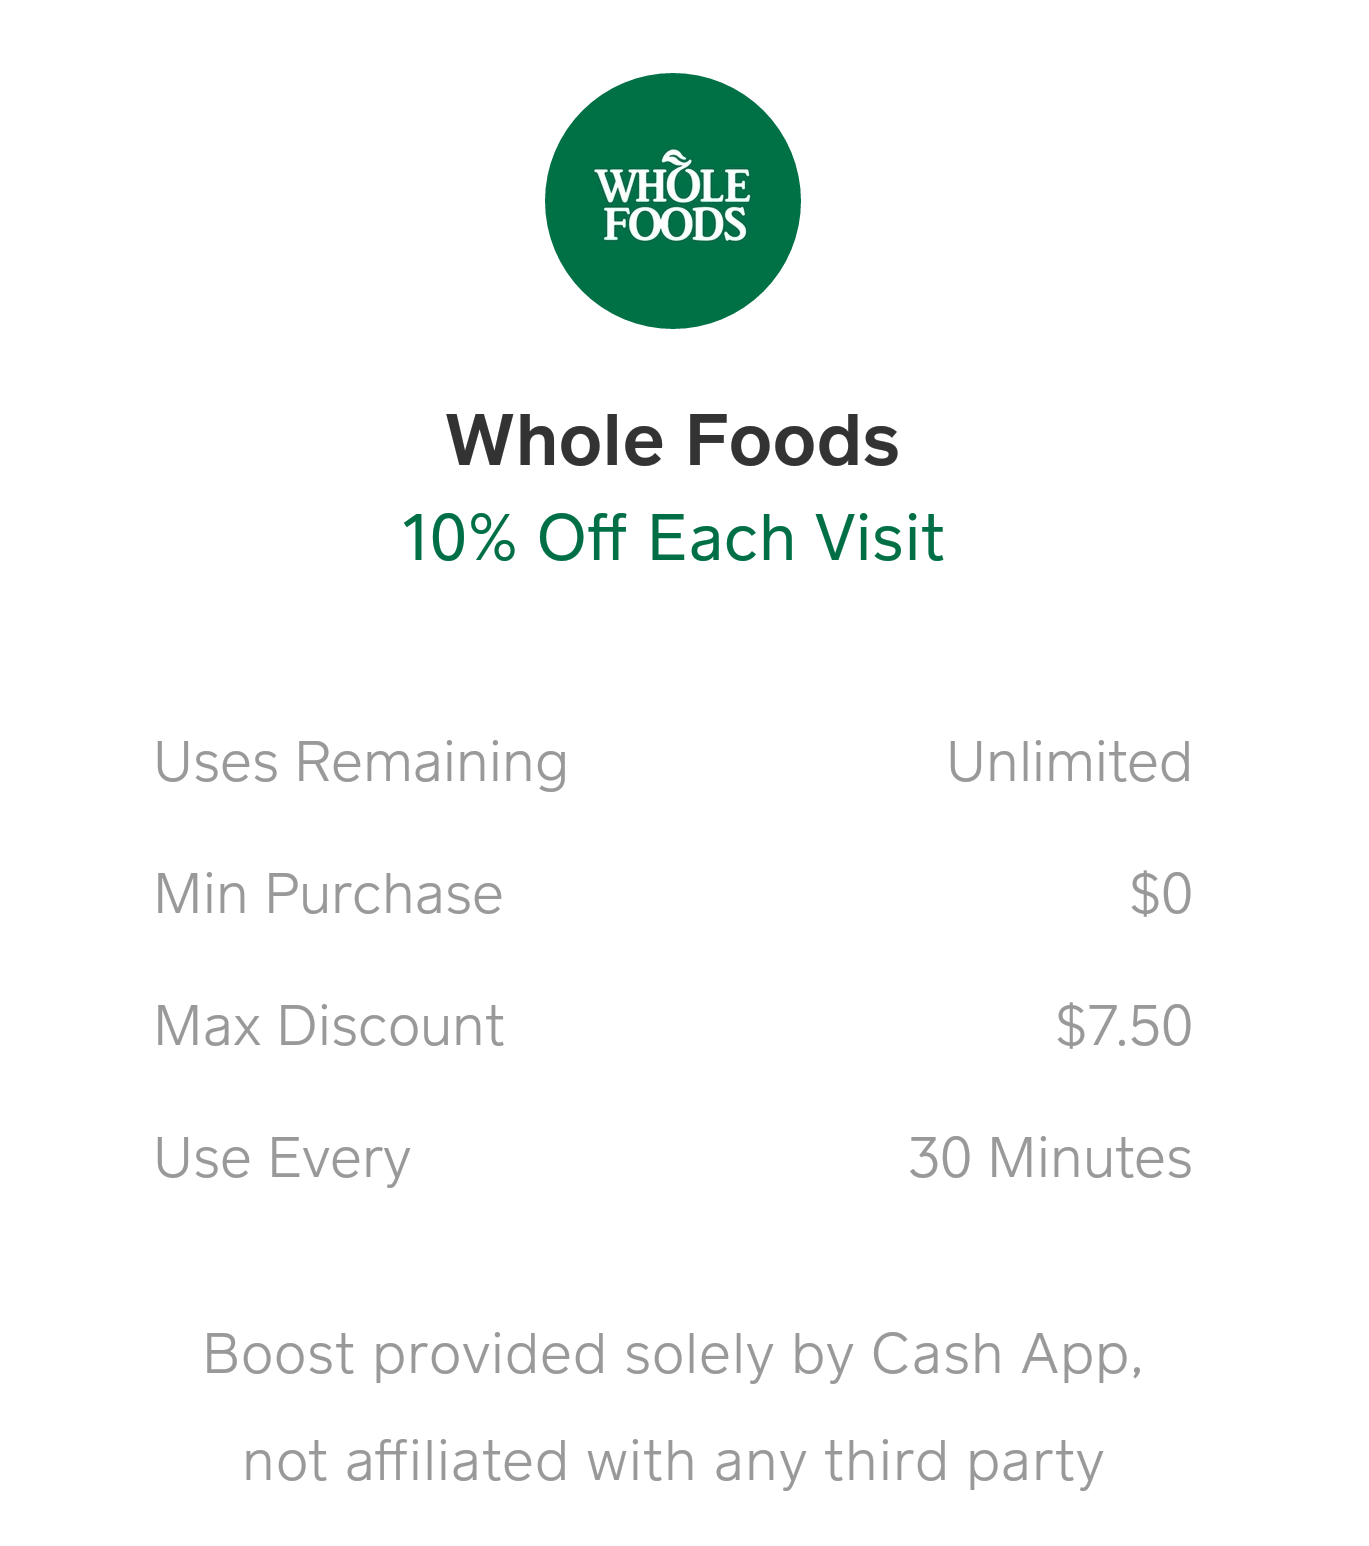 Cash App Debit Card, 10% Off Whole Foods, Chipotle and More - Danny